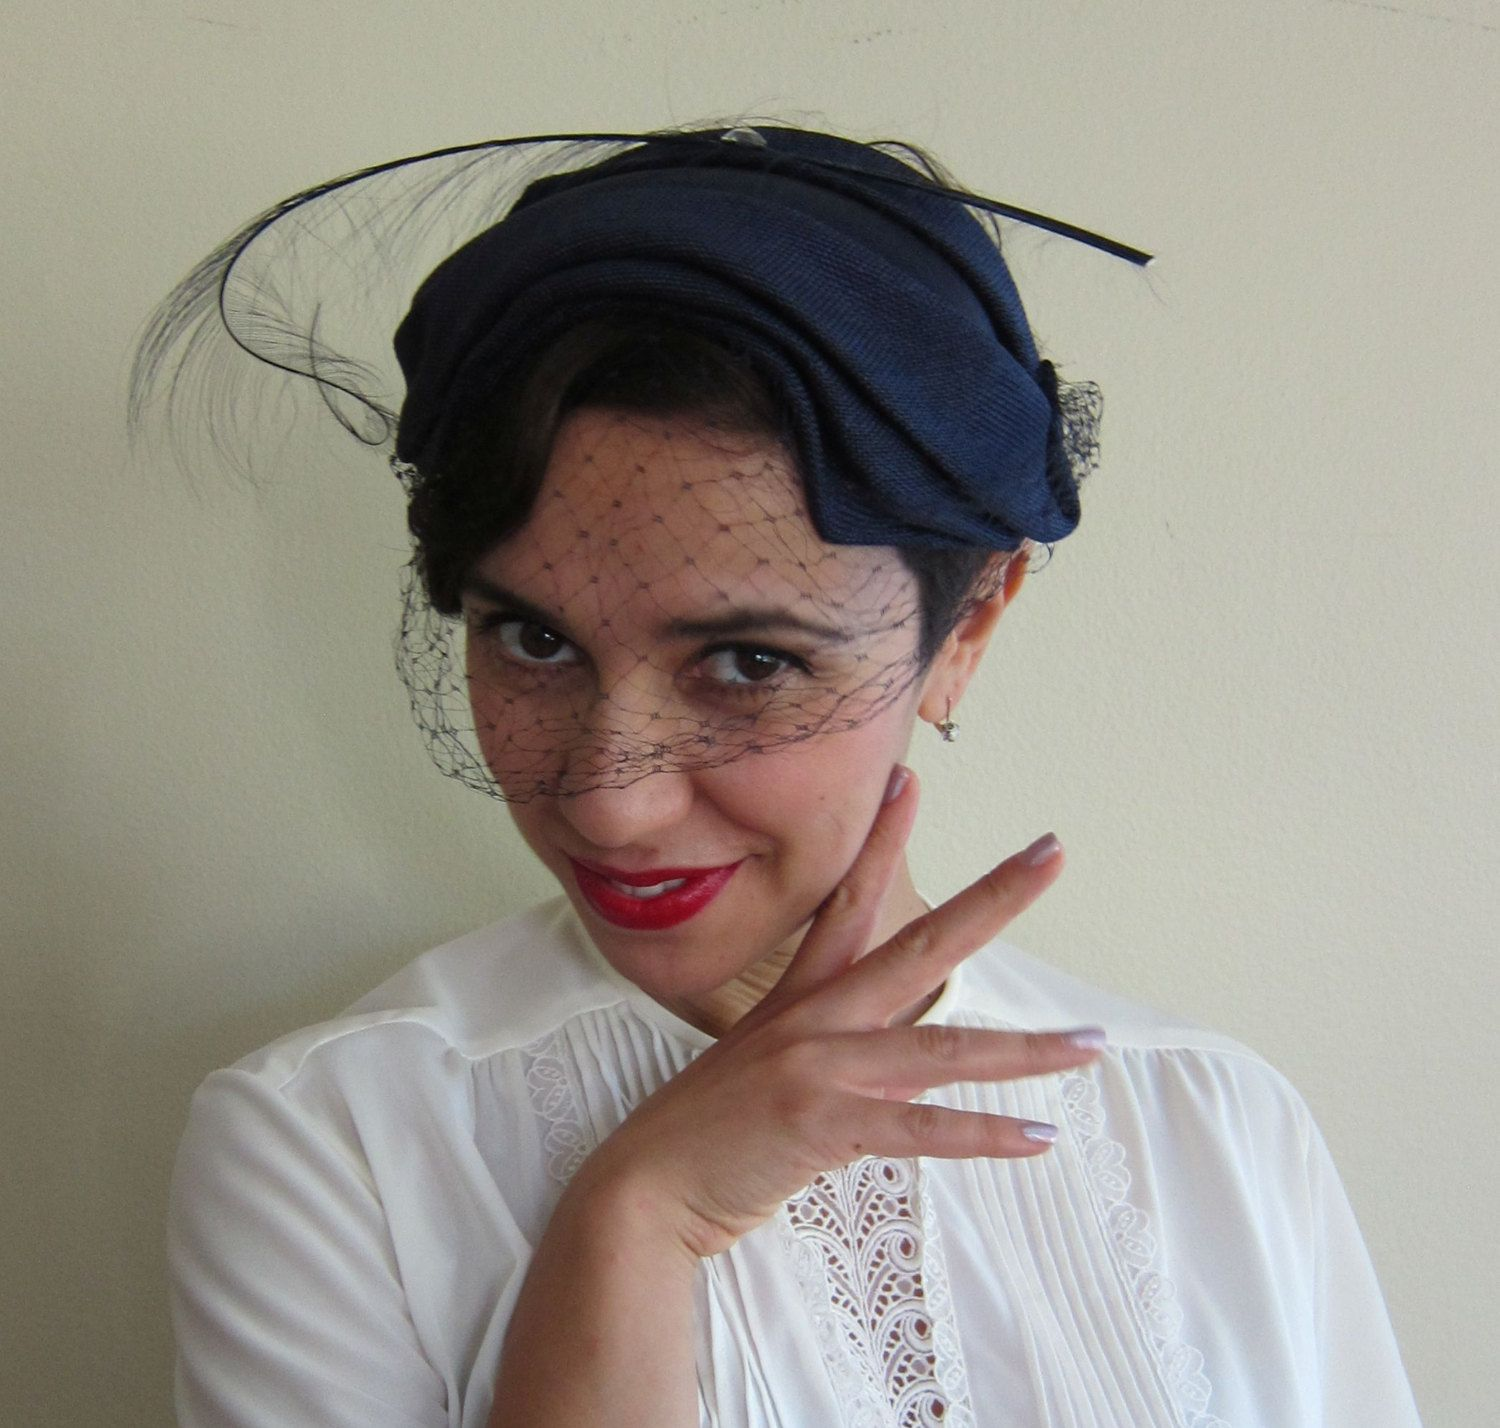 Vintage 1950s Cocktail Hat in Navy Blue   50s Fascinator Hat Headband Style  with Feather by BasyaBerkman on Etsy 40f3f9522f3